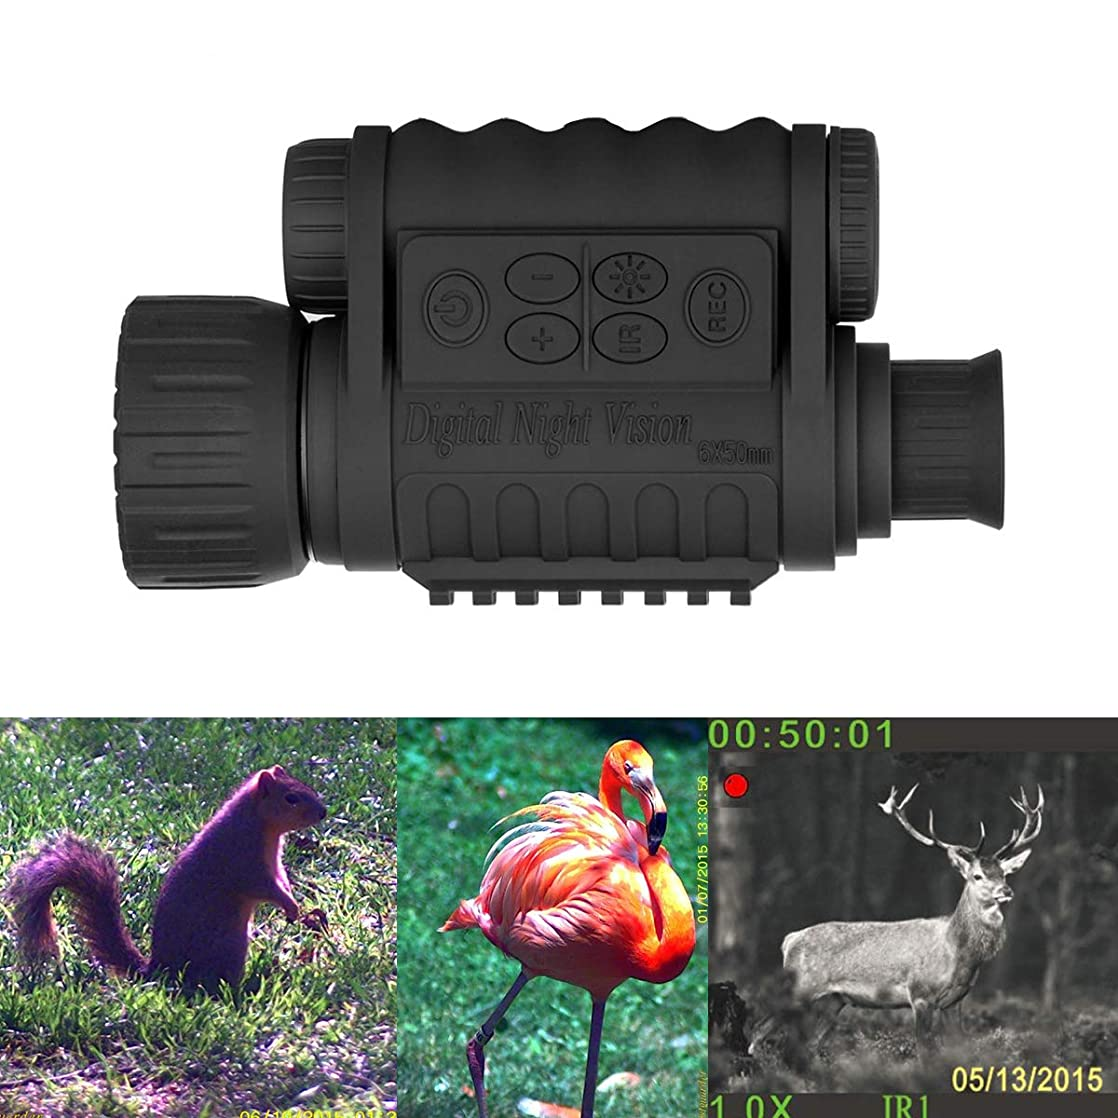 Guomu Digital Infrared Night Vision Monocular 6X 50 mm Takes 5mp Photo & 720p Video from 385 yards/1150 ft Distance in Complete Darkness for Night Hunting/Fishing yygyqytg57917